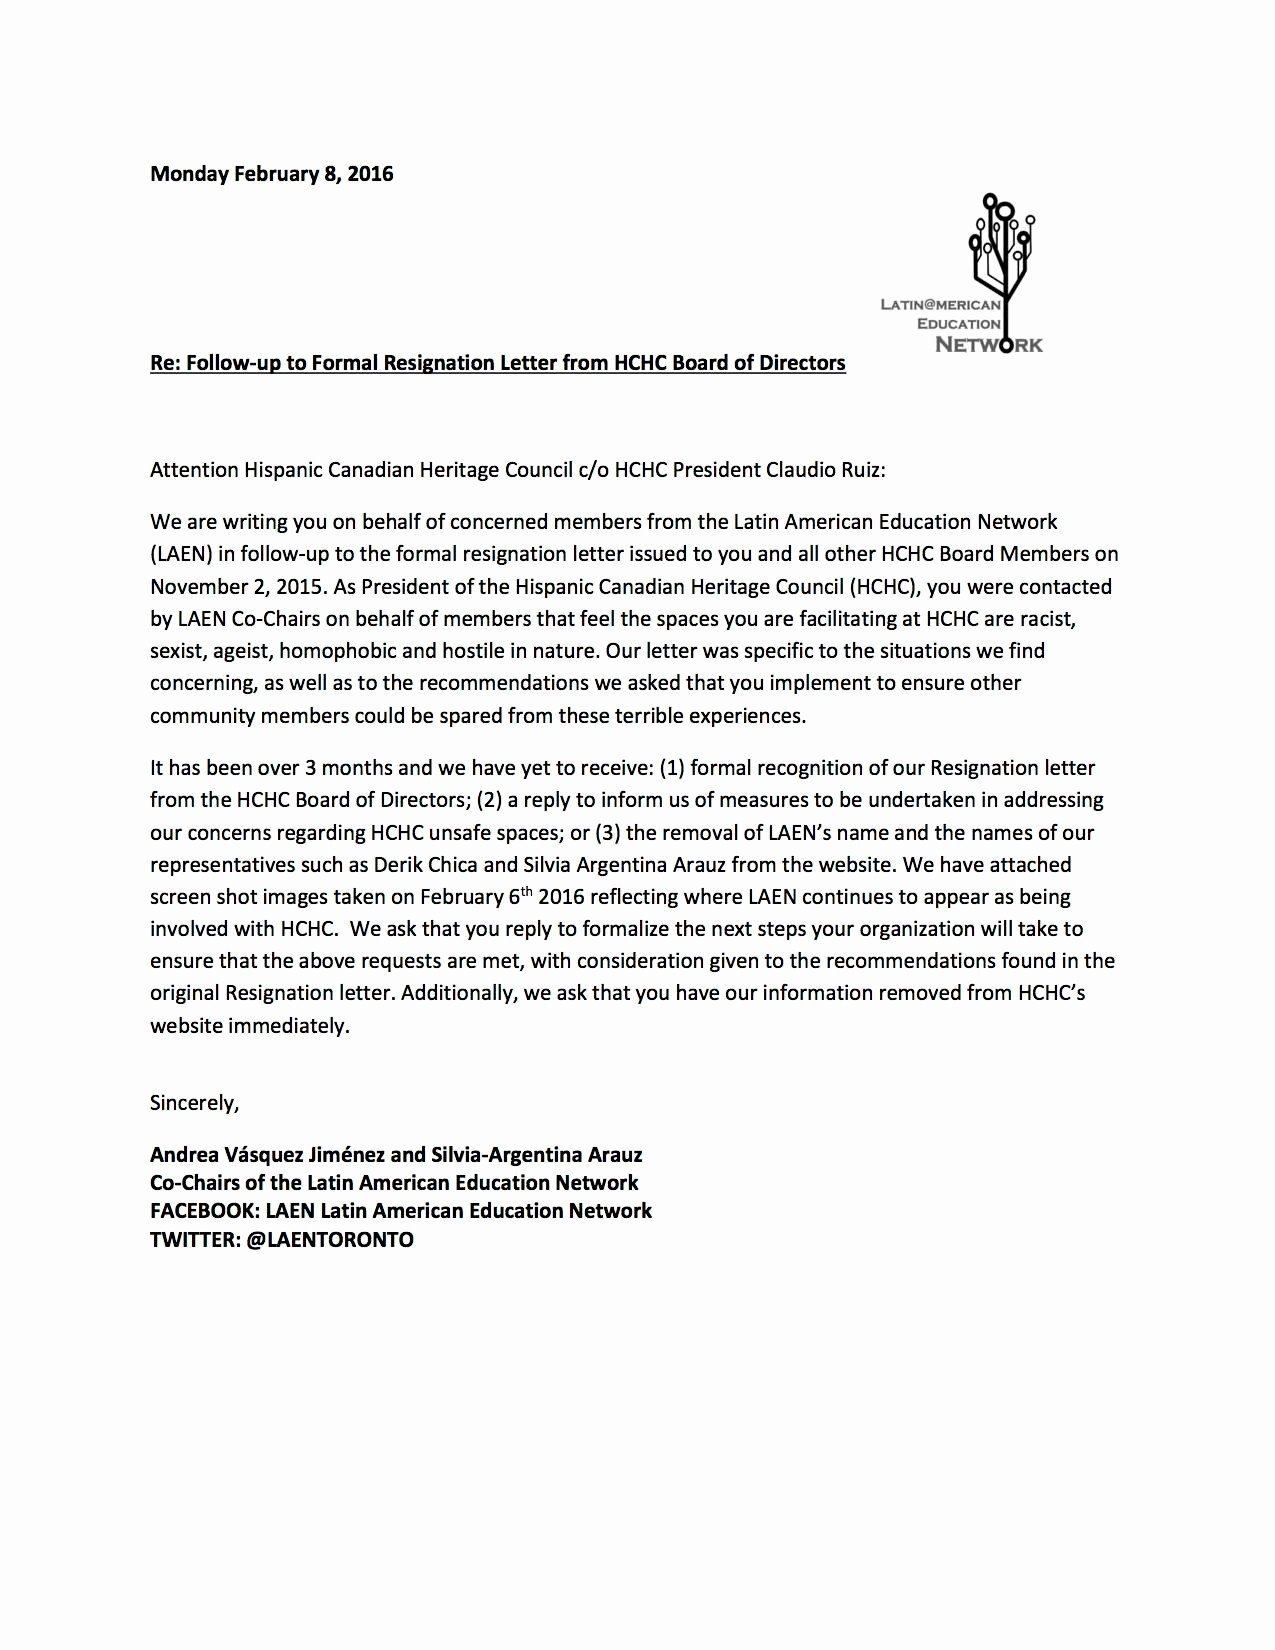 Resignation From Board Of Directors New Follow Up to formal Resignation Letter From Hchc Board Of